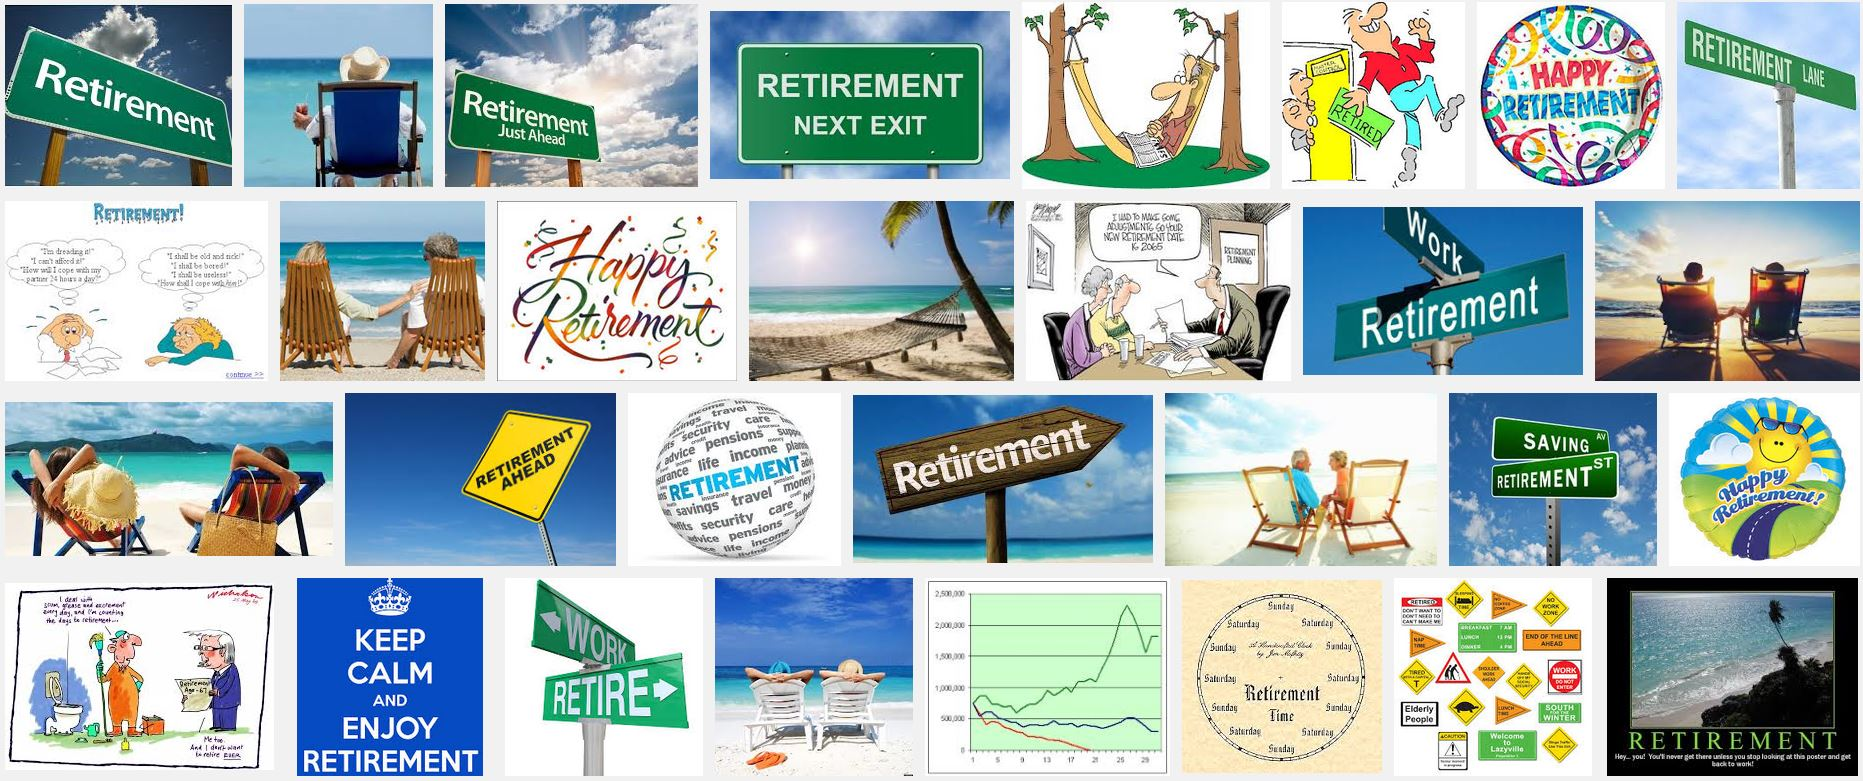 how to find a financial planner australia